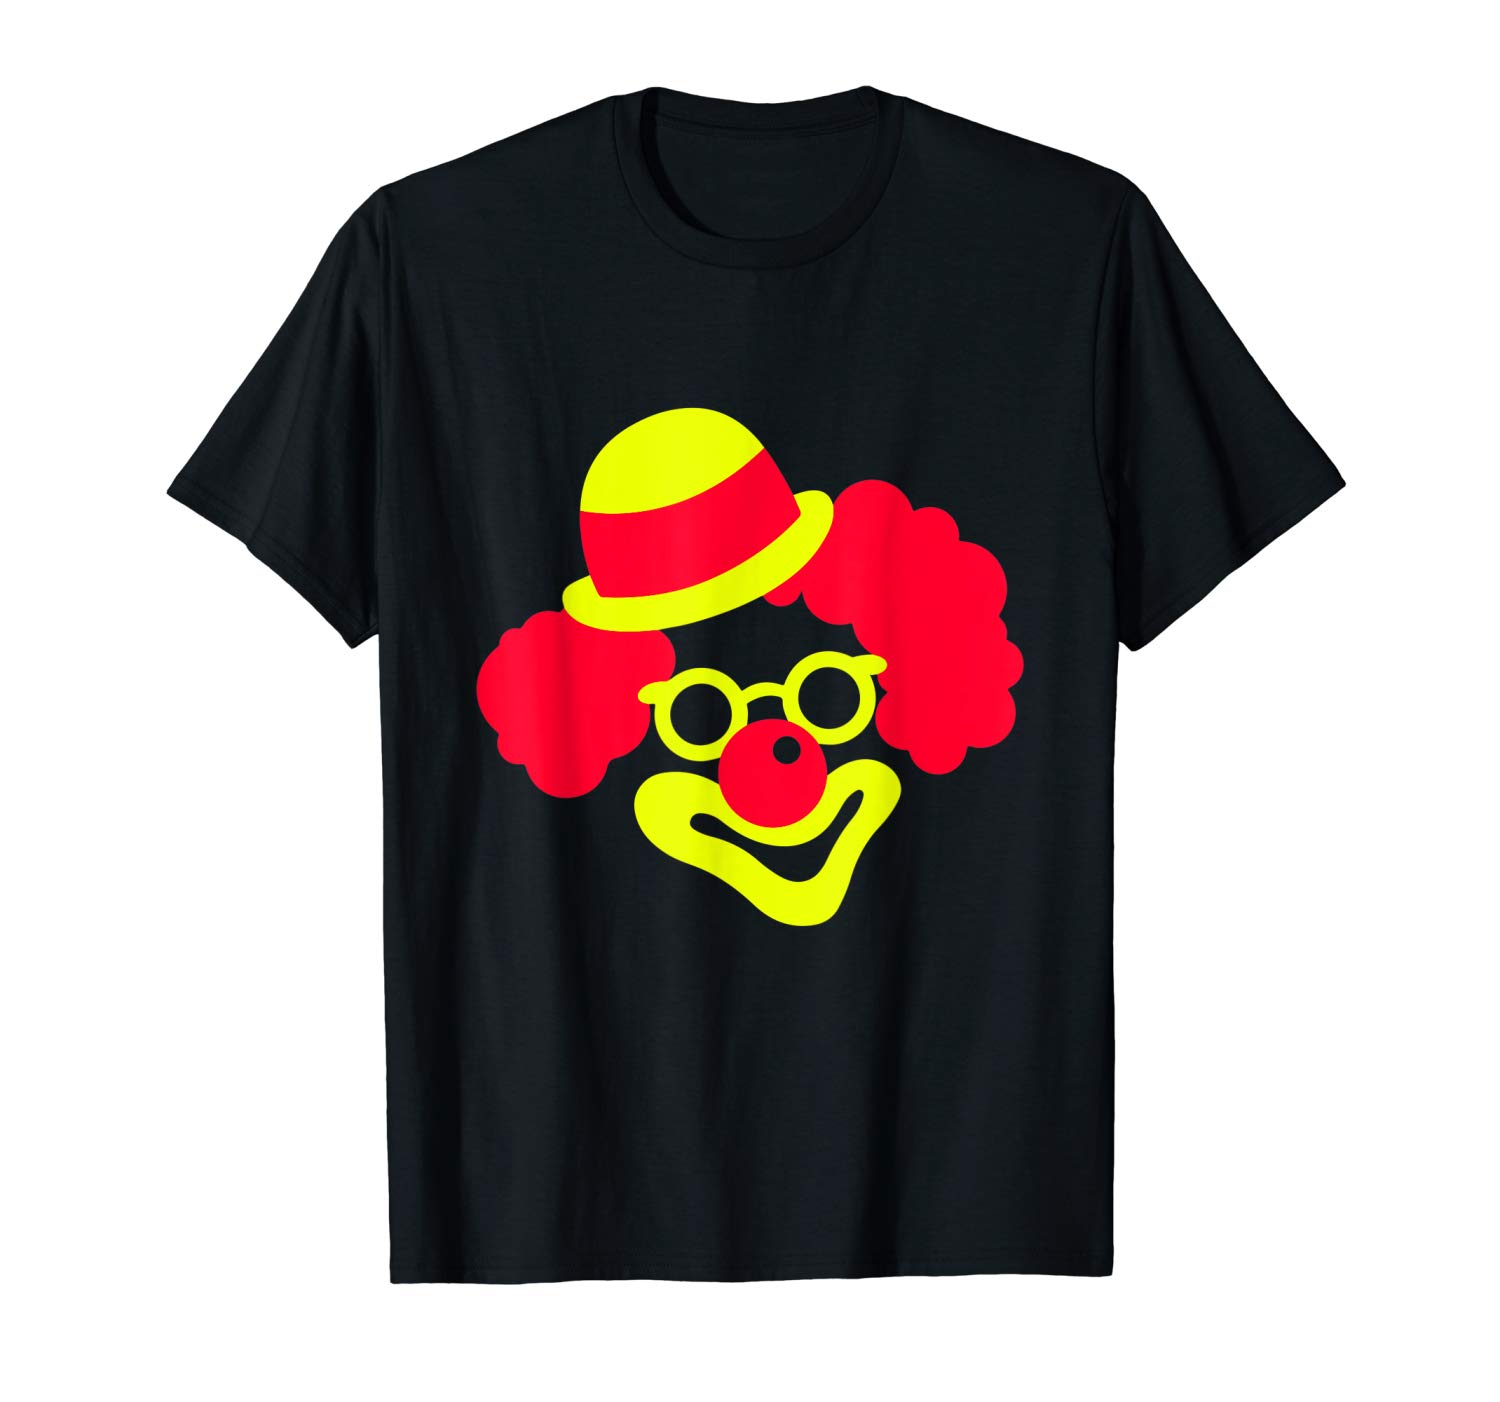 Funny Horror Halloween Clown Face Scary Tshirt Gifts